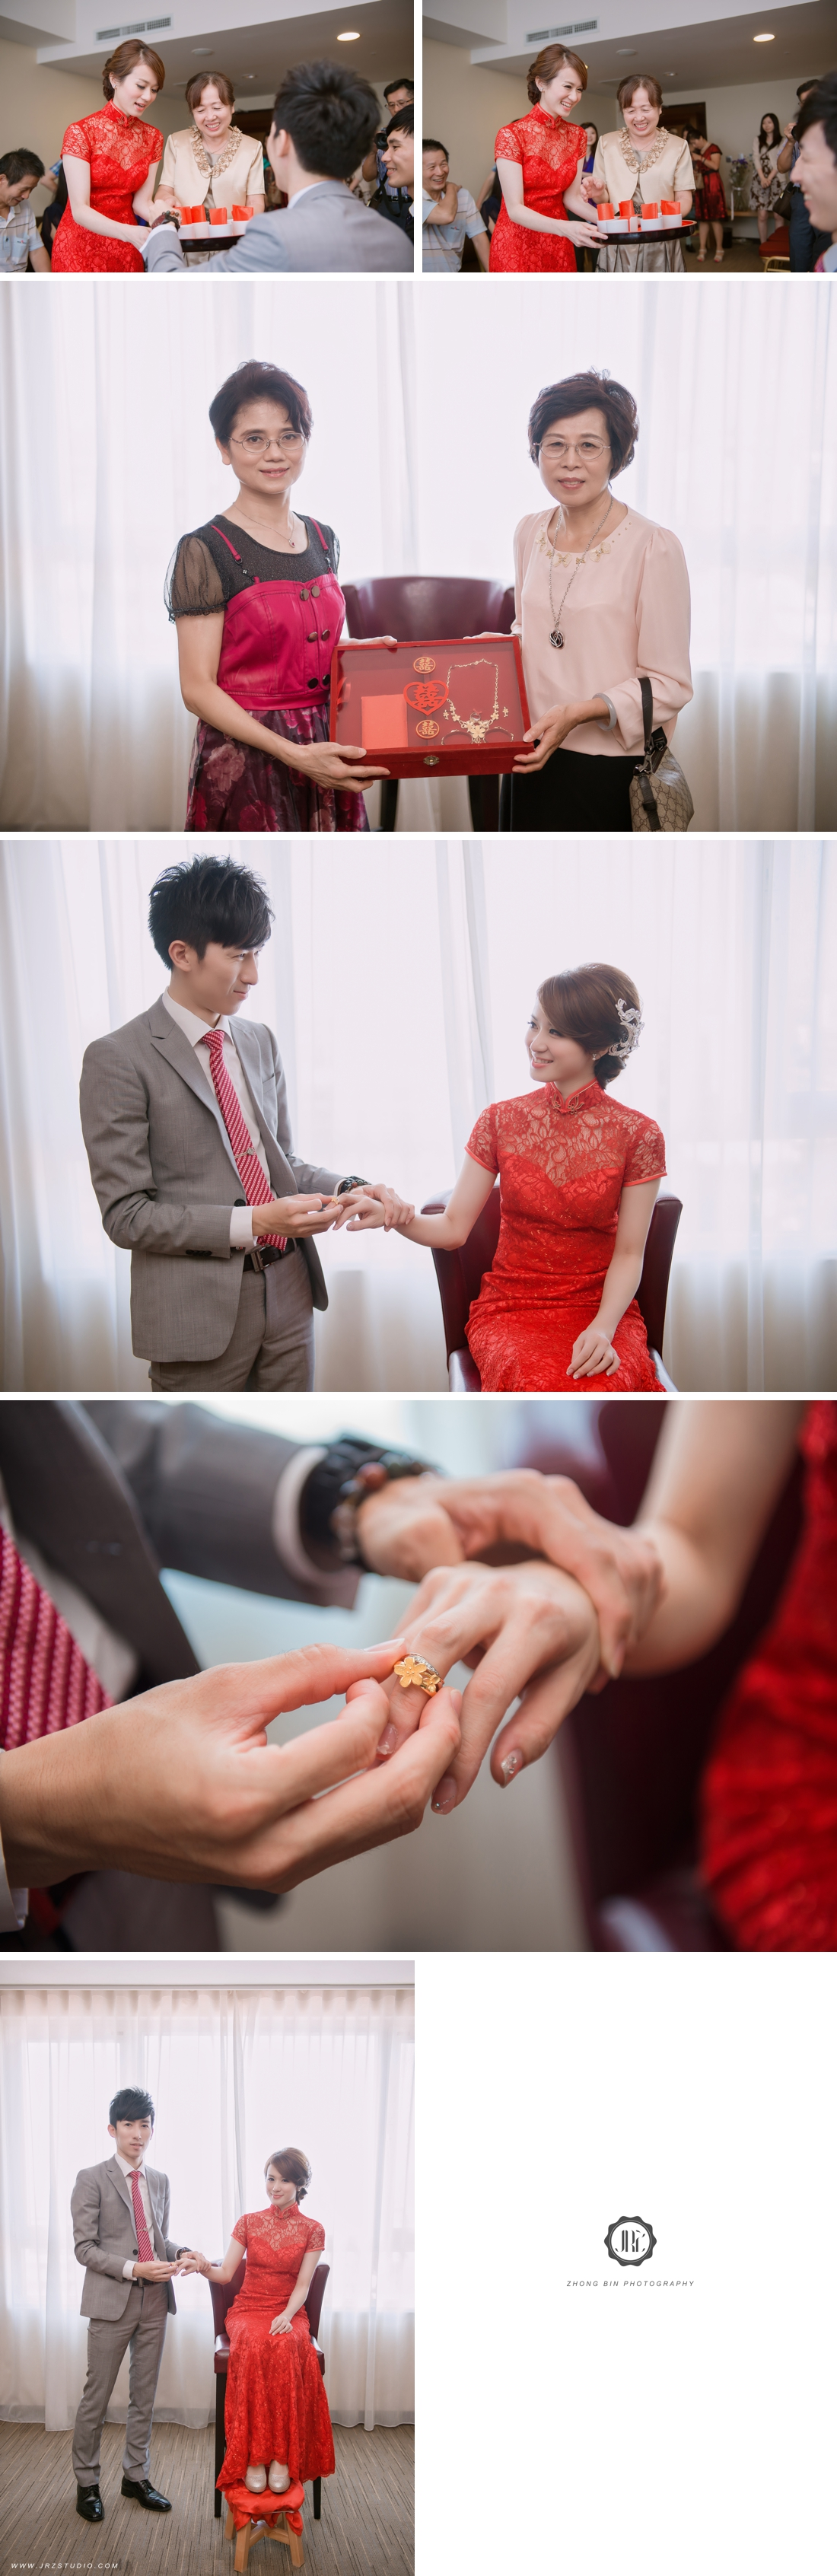 IVAN+TINA Wedding 桃禧航空城飯店_03